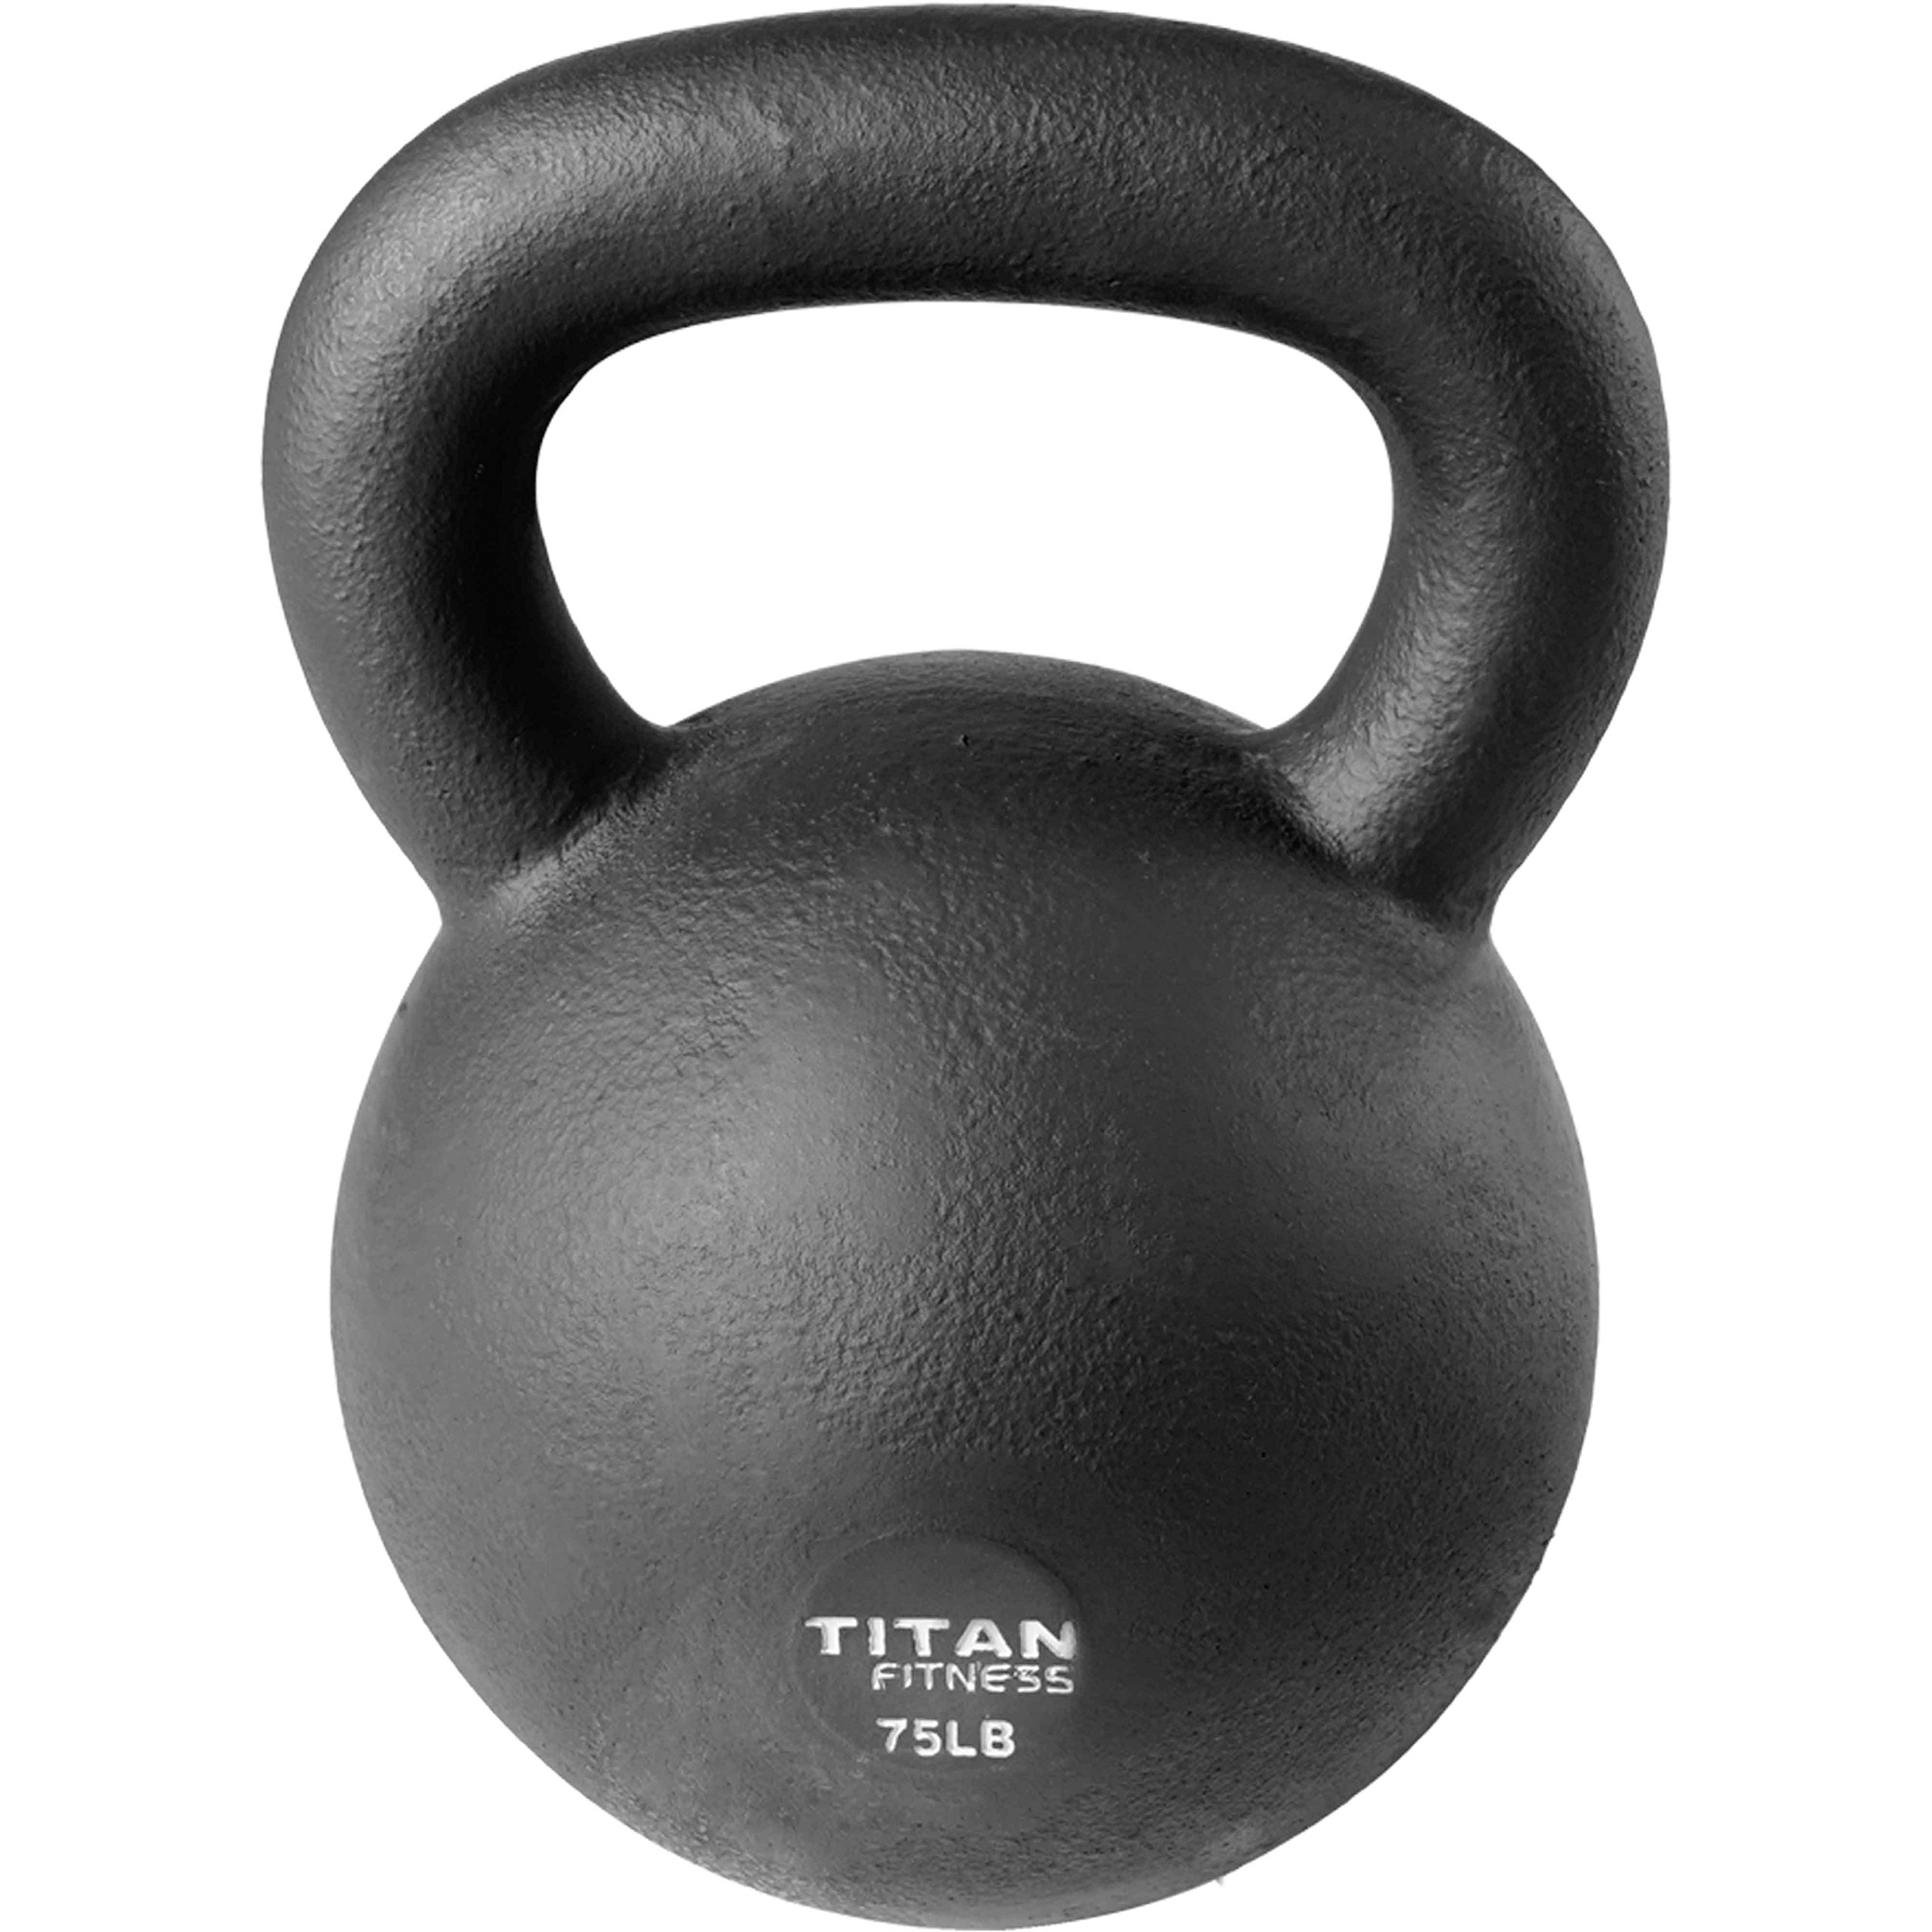 Cast Iron Kettlebell Weight 75 lb Natural Solid Titan Fitness Workout Swing by Titan Fitness (Image #2)